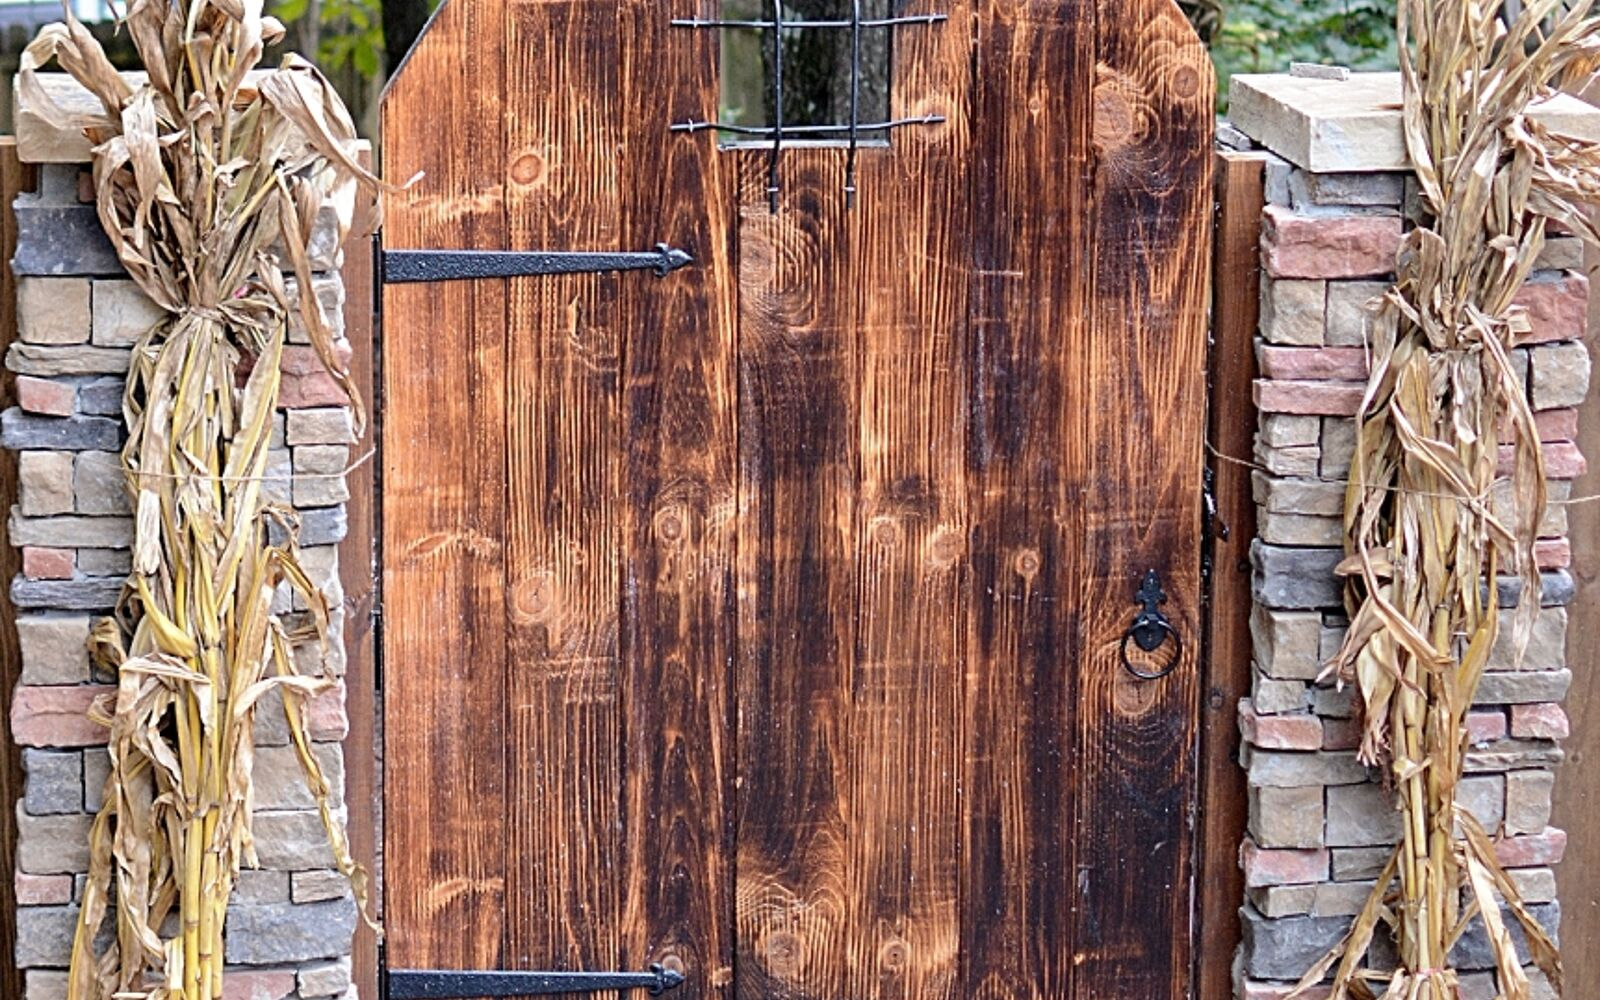 s upgrade your backyard with these 30 clever ideas, Build a rustic backyard door